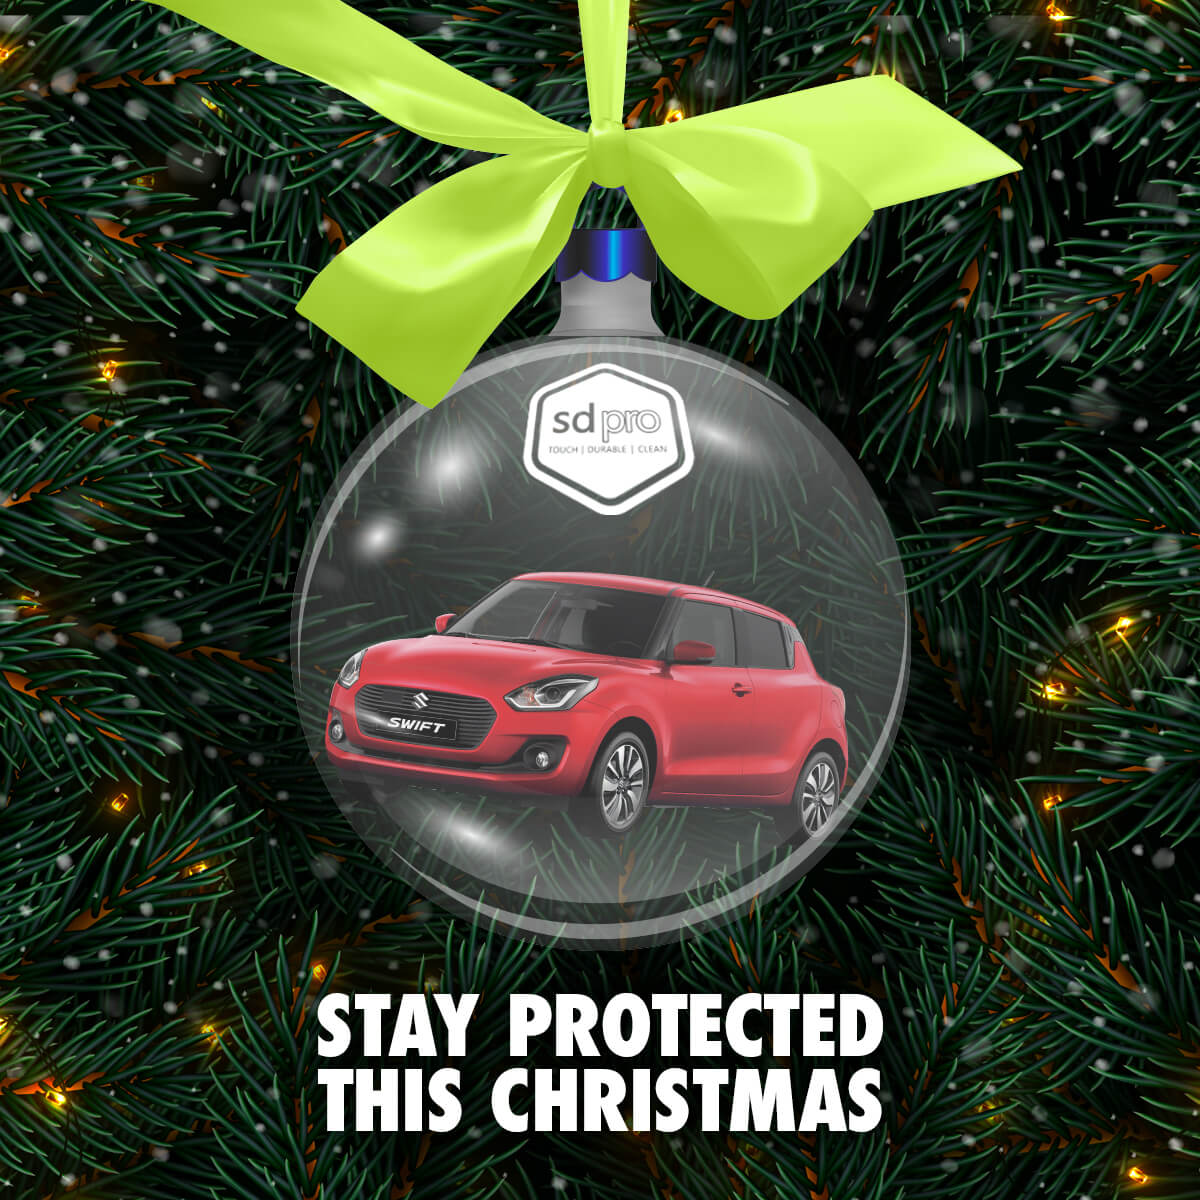 Suzuki sdpro Festive Offer